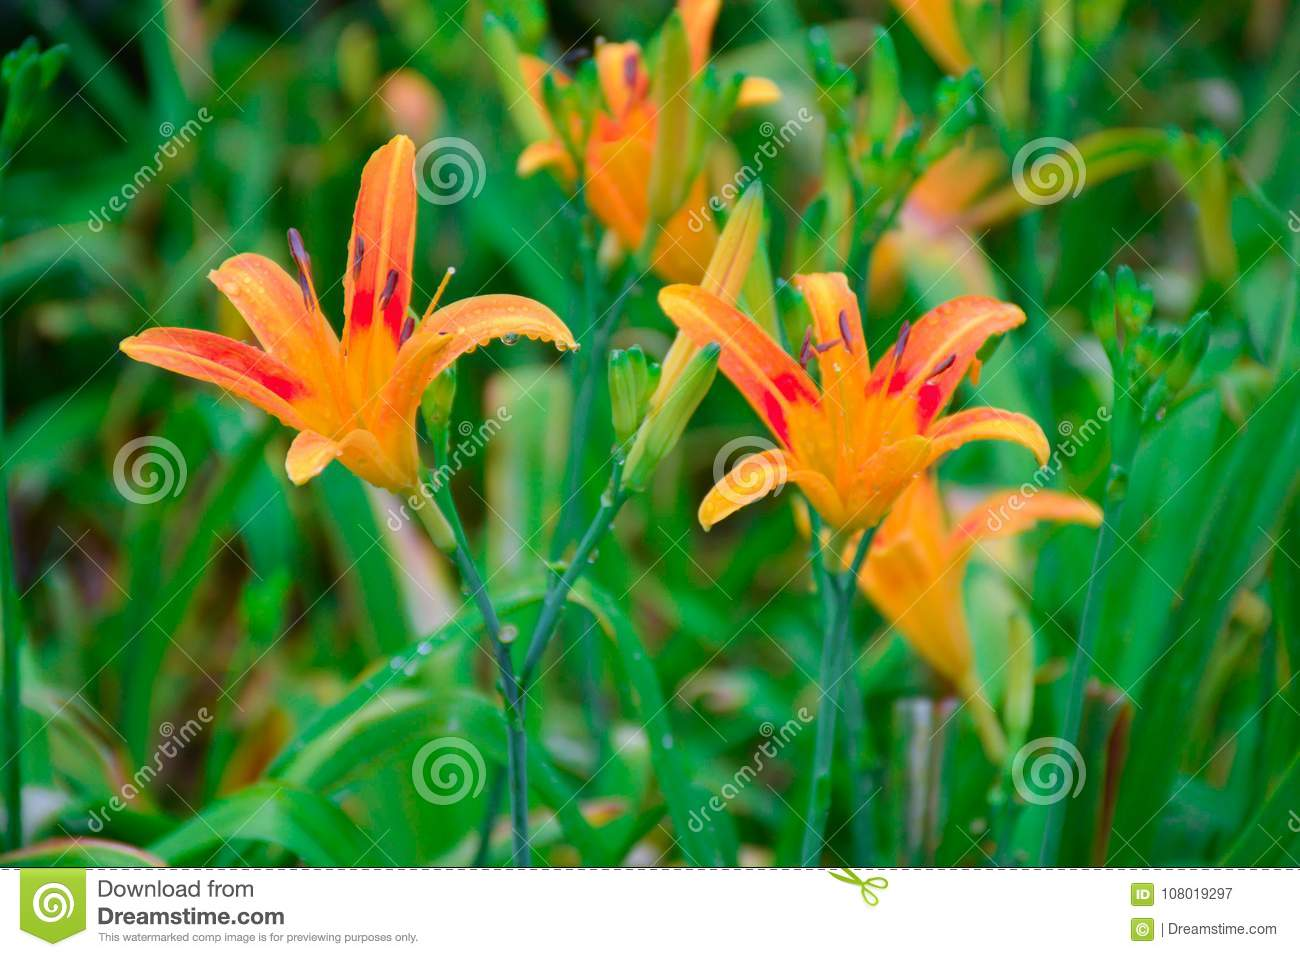 The flowers of the orange lily in the spring stock image image of download the flowers of the orange lily in the spring stock image image of hemerocallis izmirmasajfo